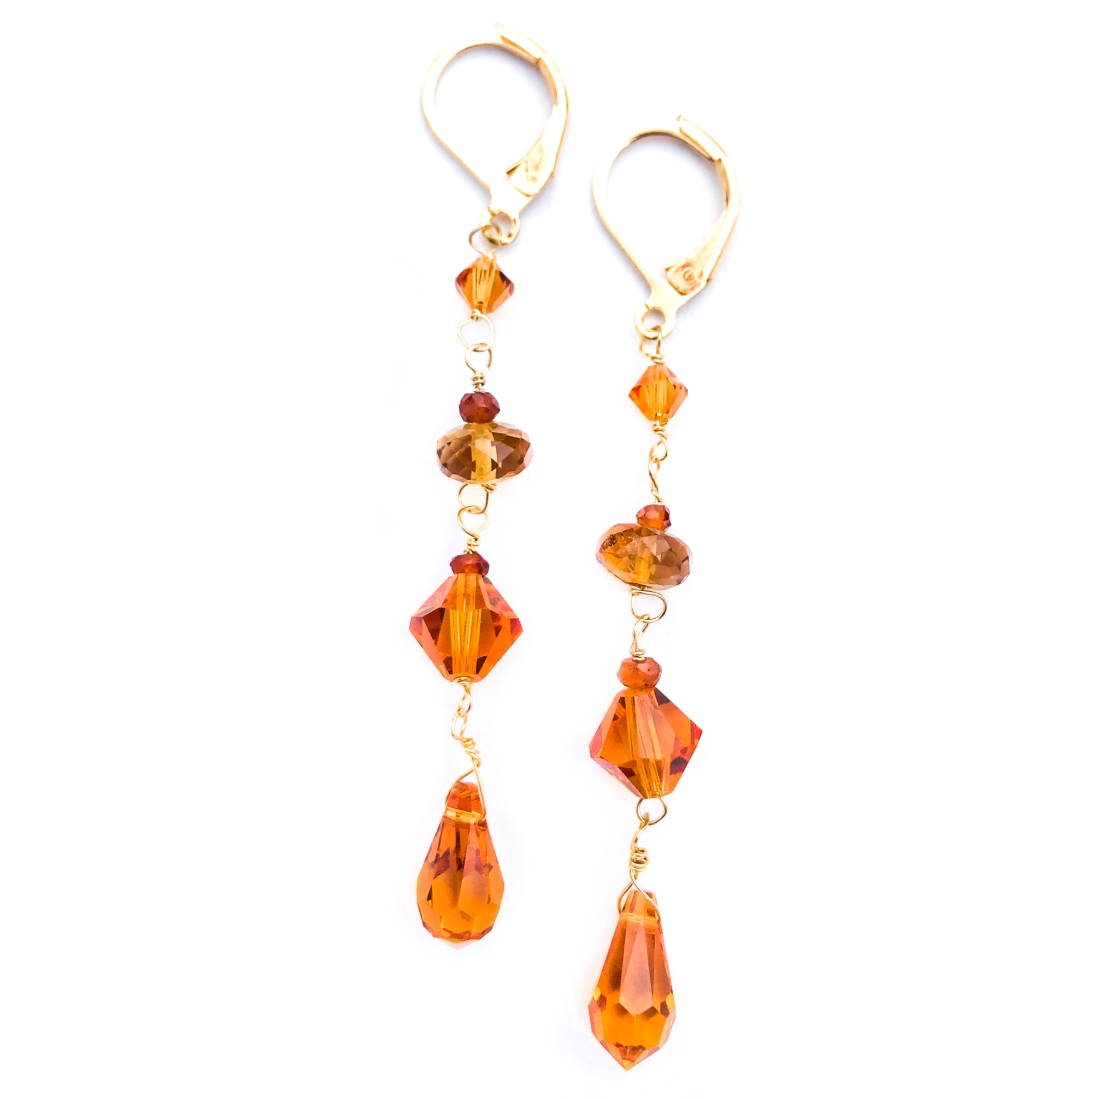 Picture of citrine drop earrings by Andrea Leitch